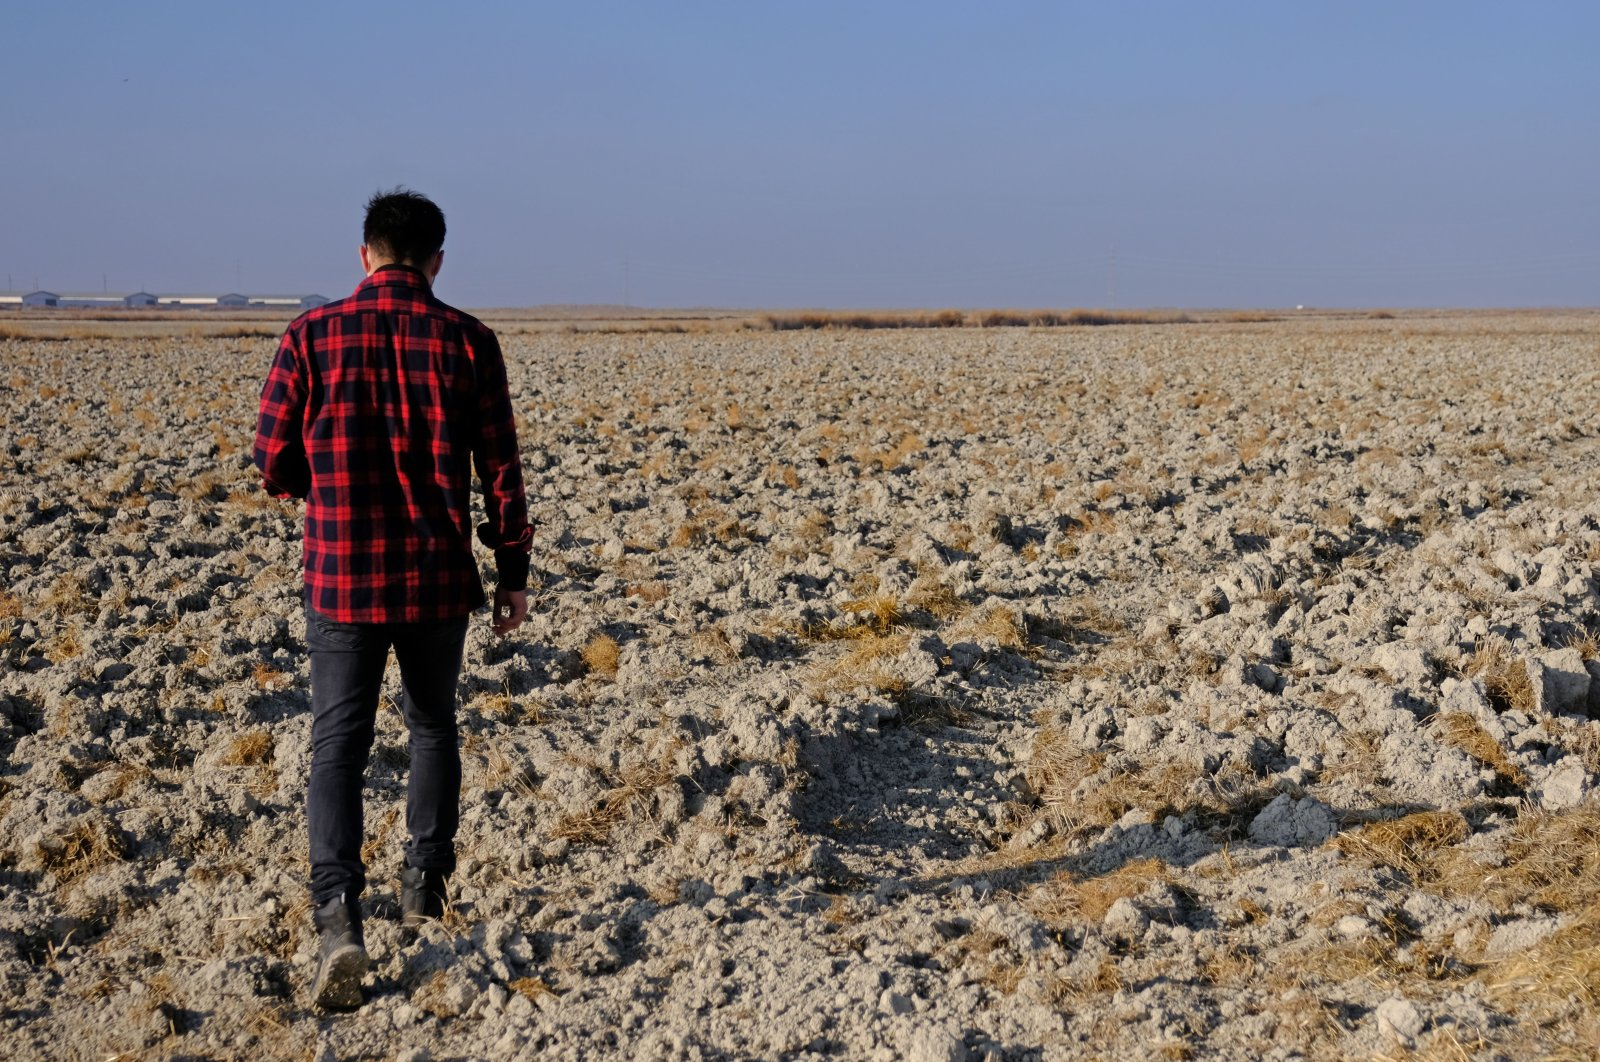 A man walks on the lands hit by drought in Konya, central Turkey, Dec. 10, 2020. (DHA PHOTO)